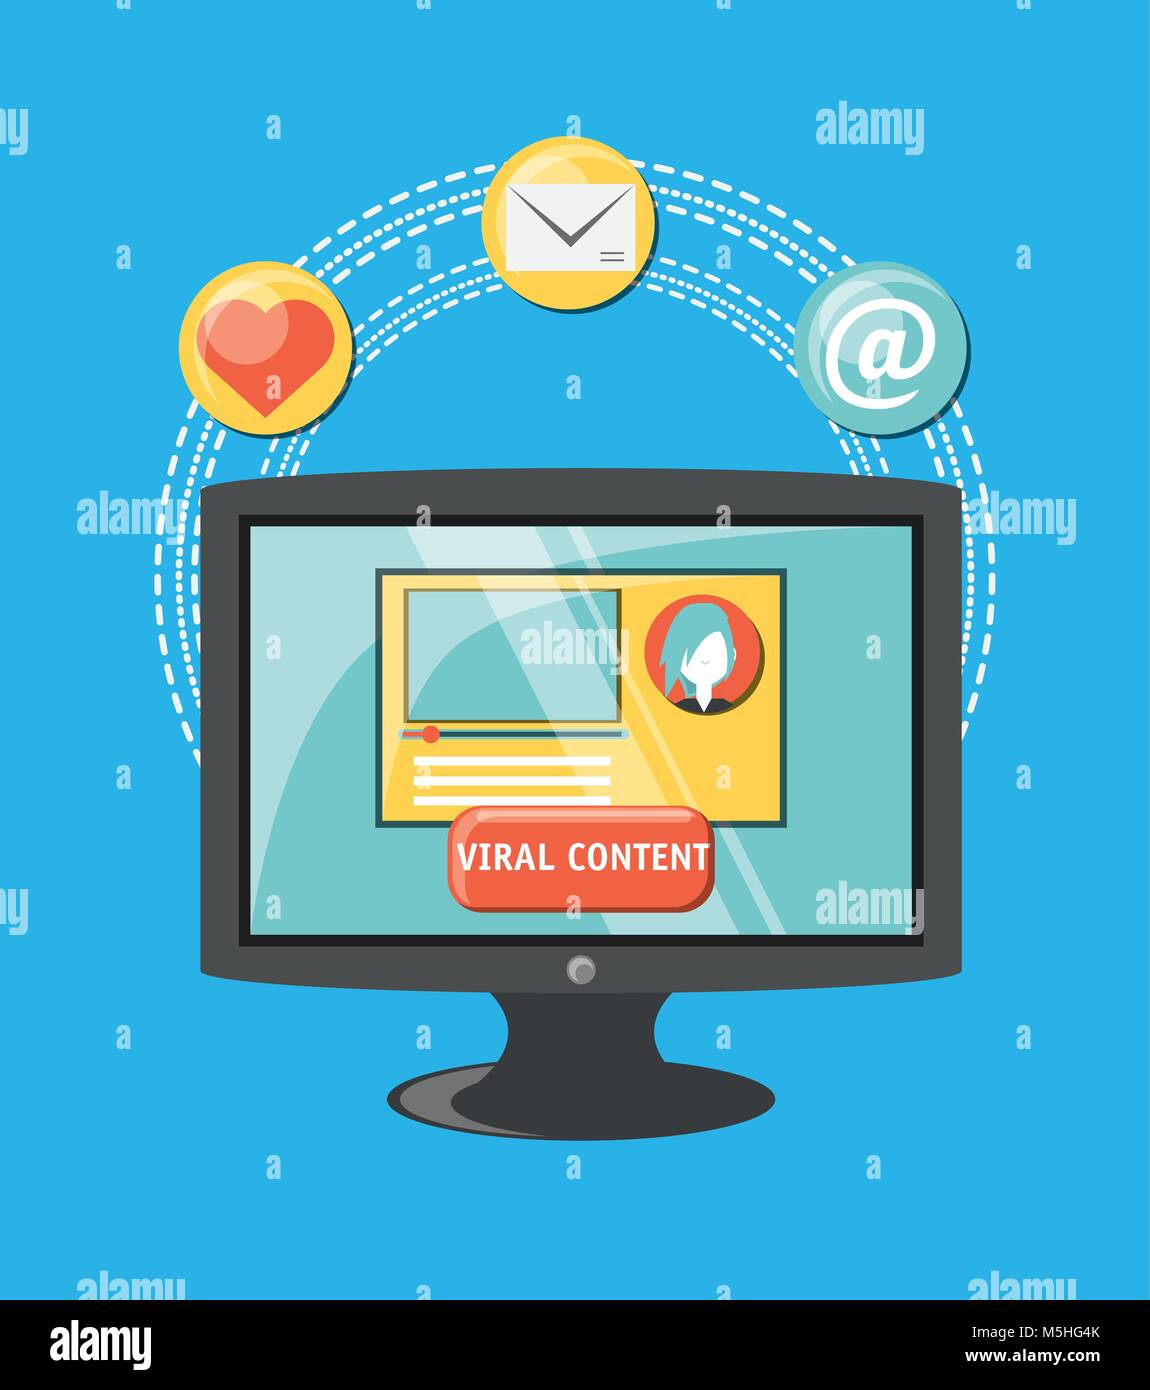 viral content design - Stock Image